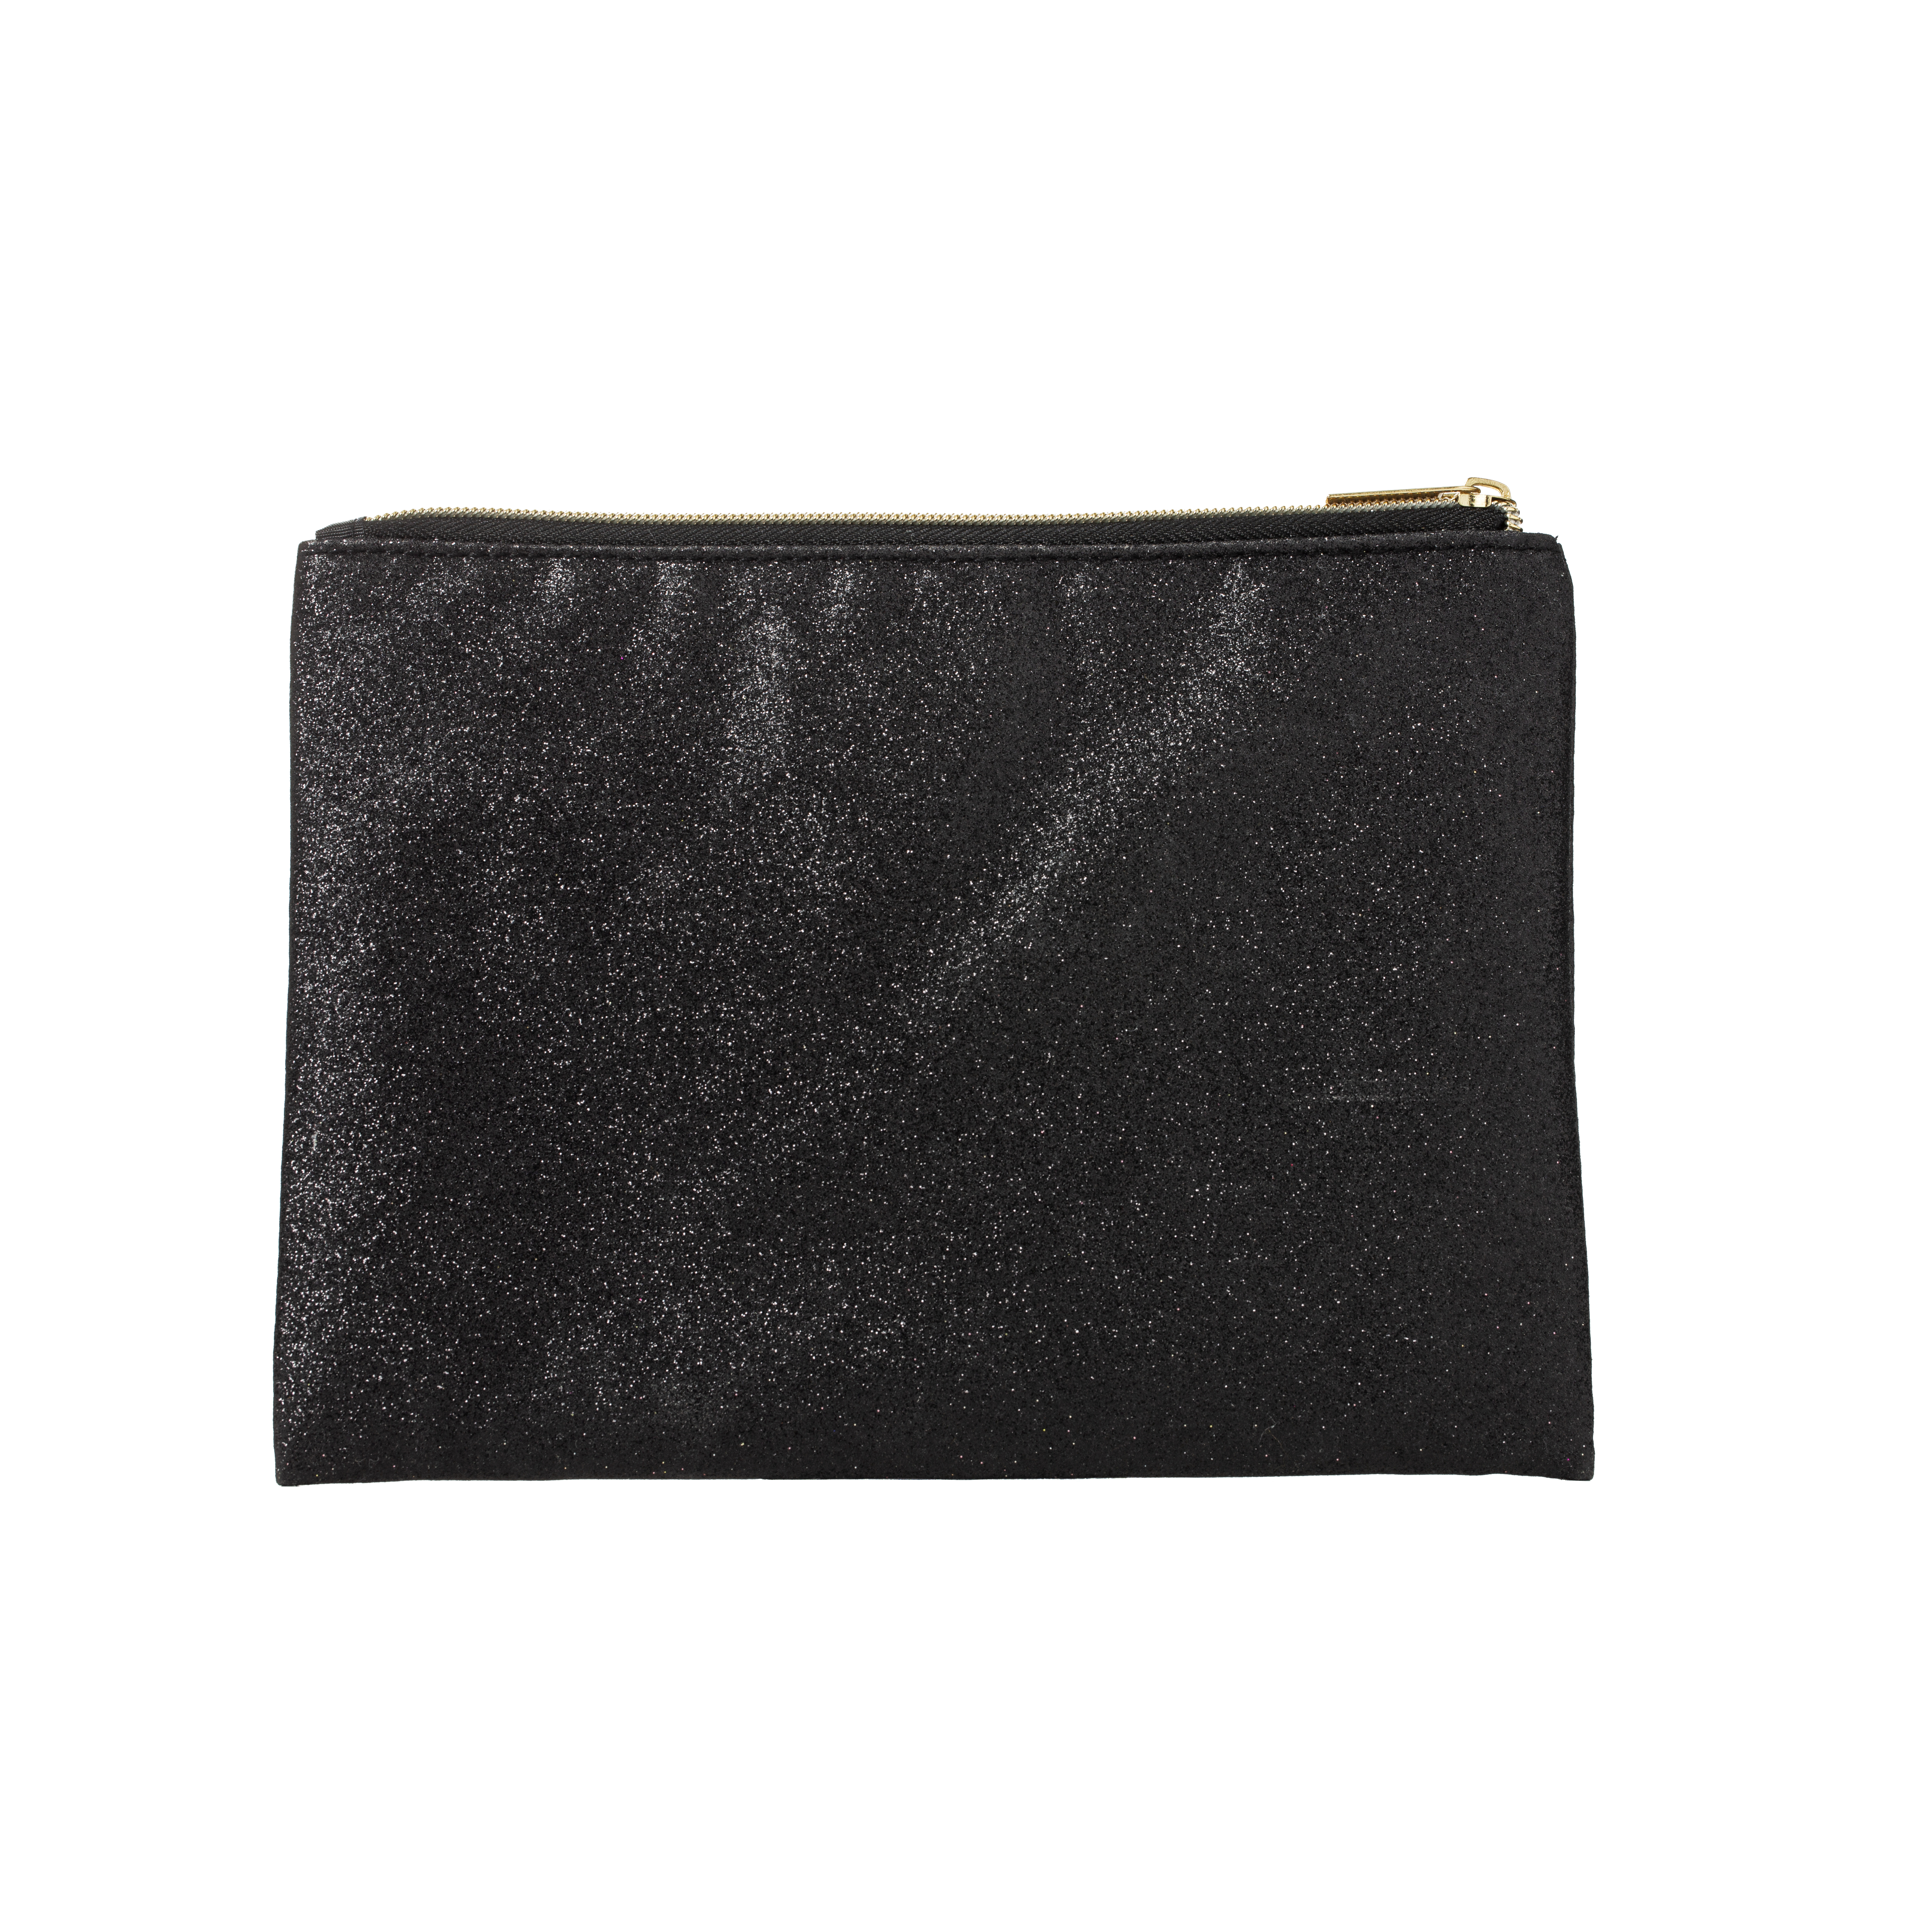 Makeup Bag Black Glitter